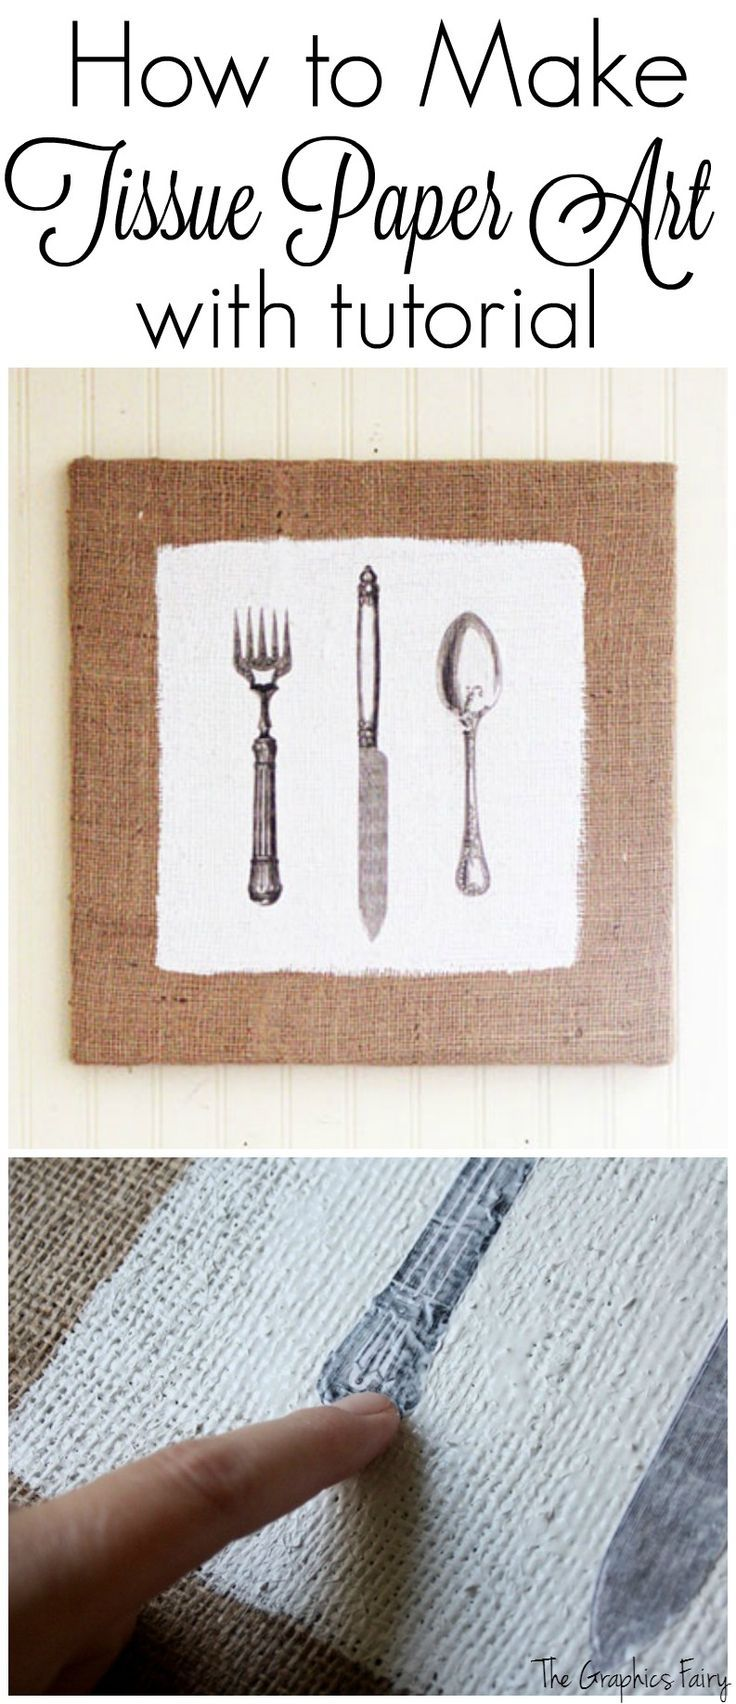 Make Tissue Paper Art! This is so cool! Print any design on Tissue Paper with your HOME PRINTER, and then use it to make Custom DIY Burlap Wall Decor for your Home!